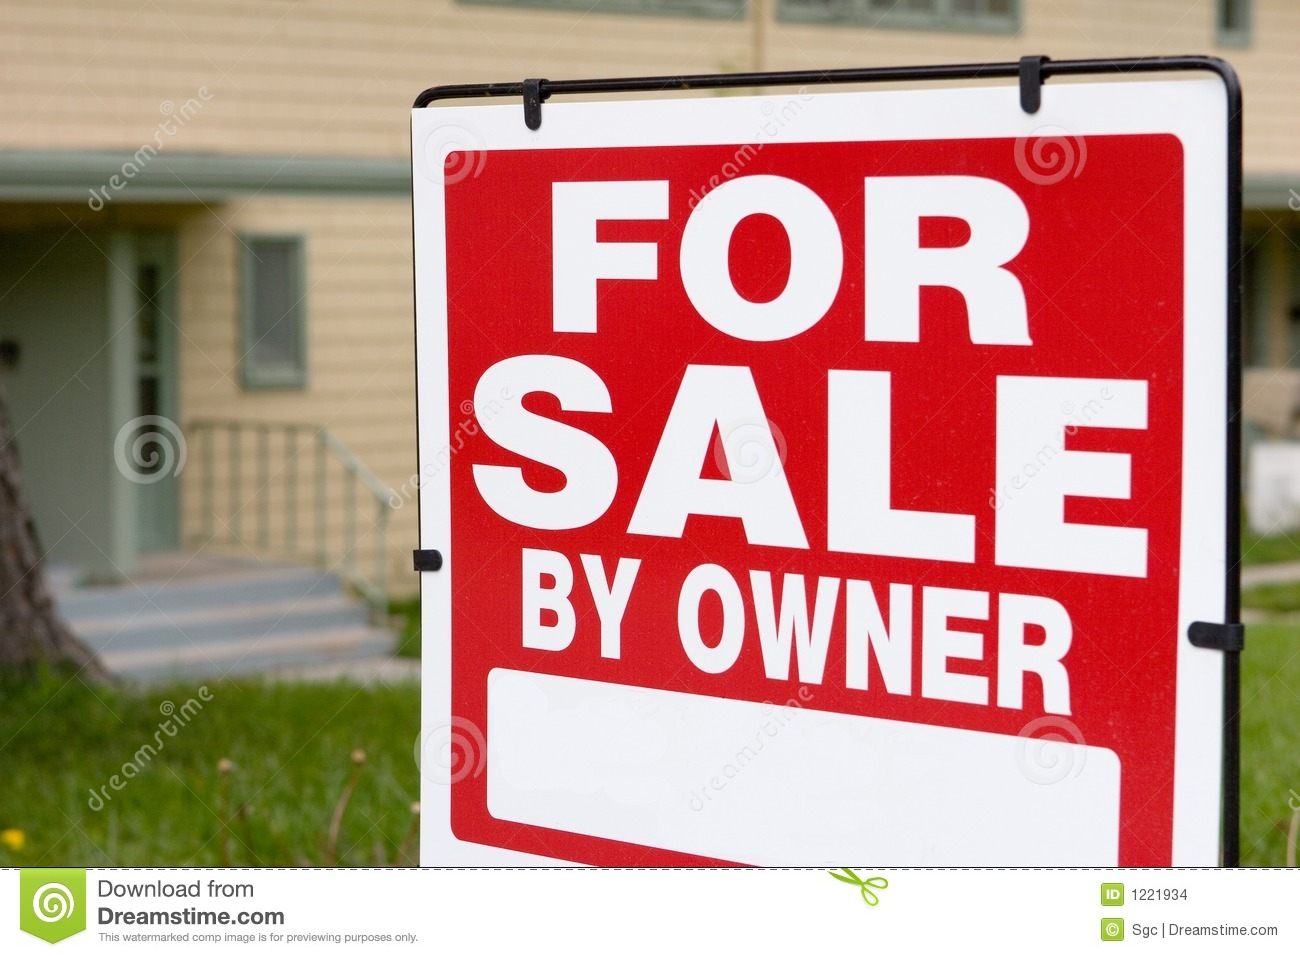 For sale by owner stock photo Image of realtor broker 1221934